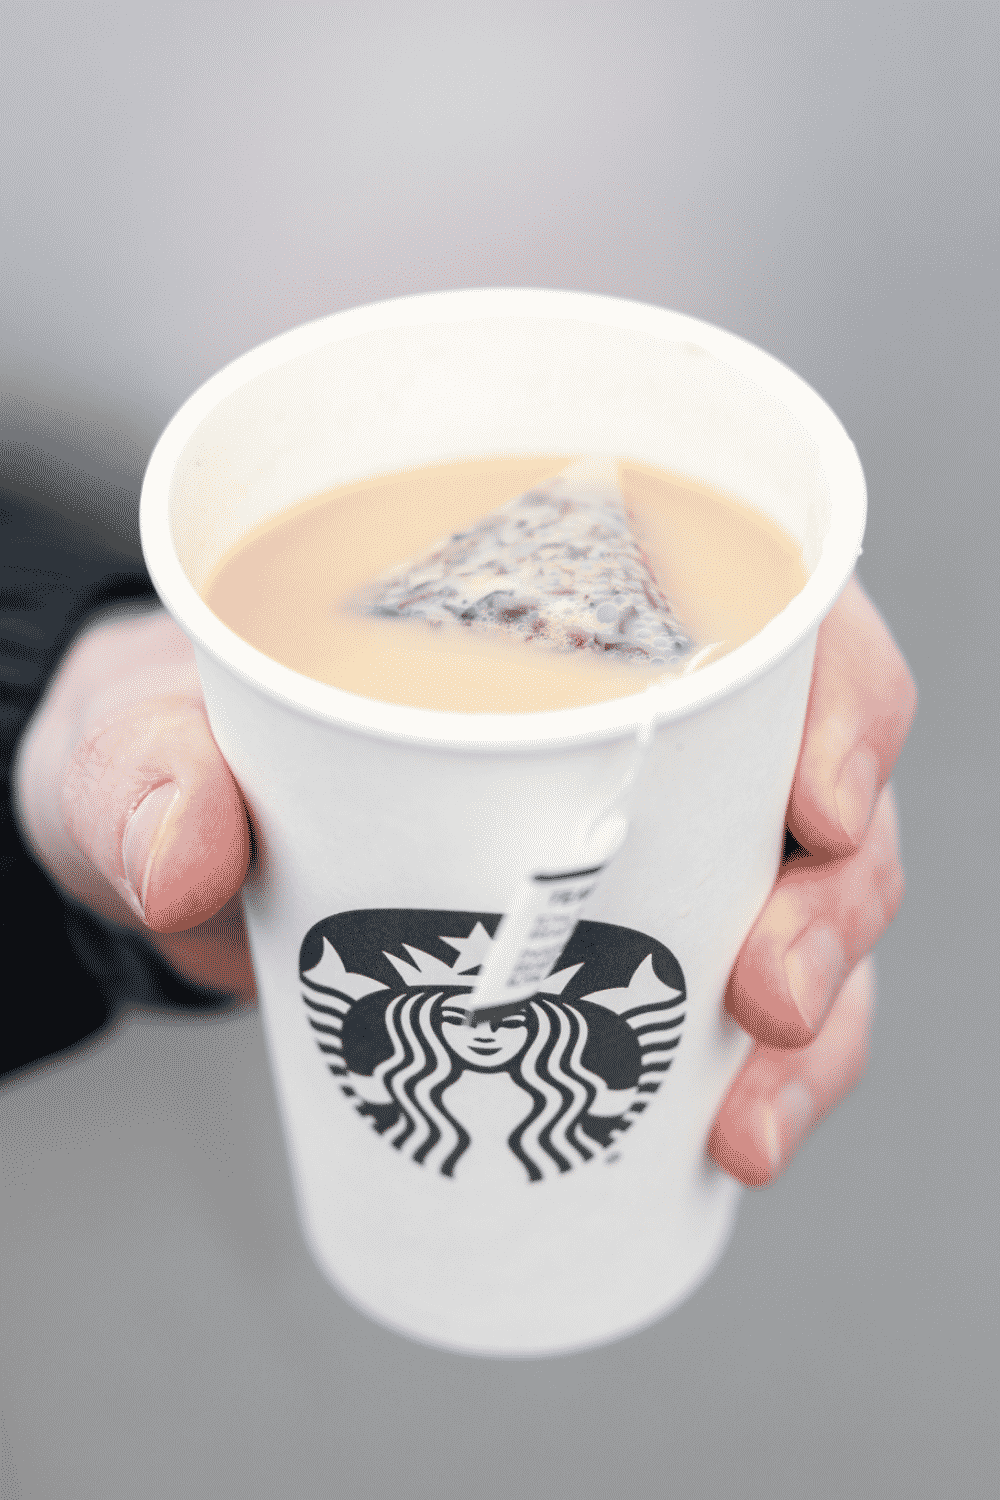 A hand holding a cup of Starbucks royal English breakfast tea latte.